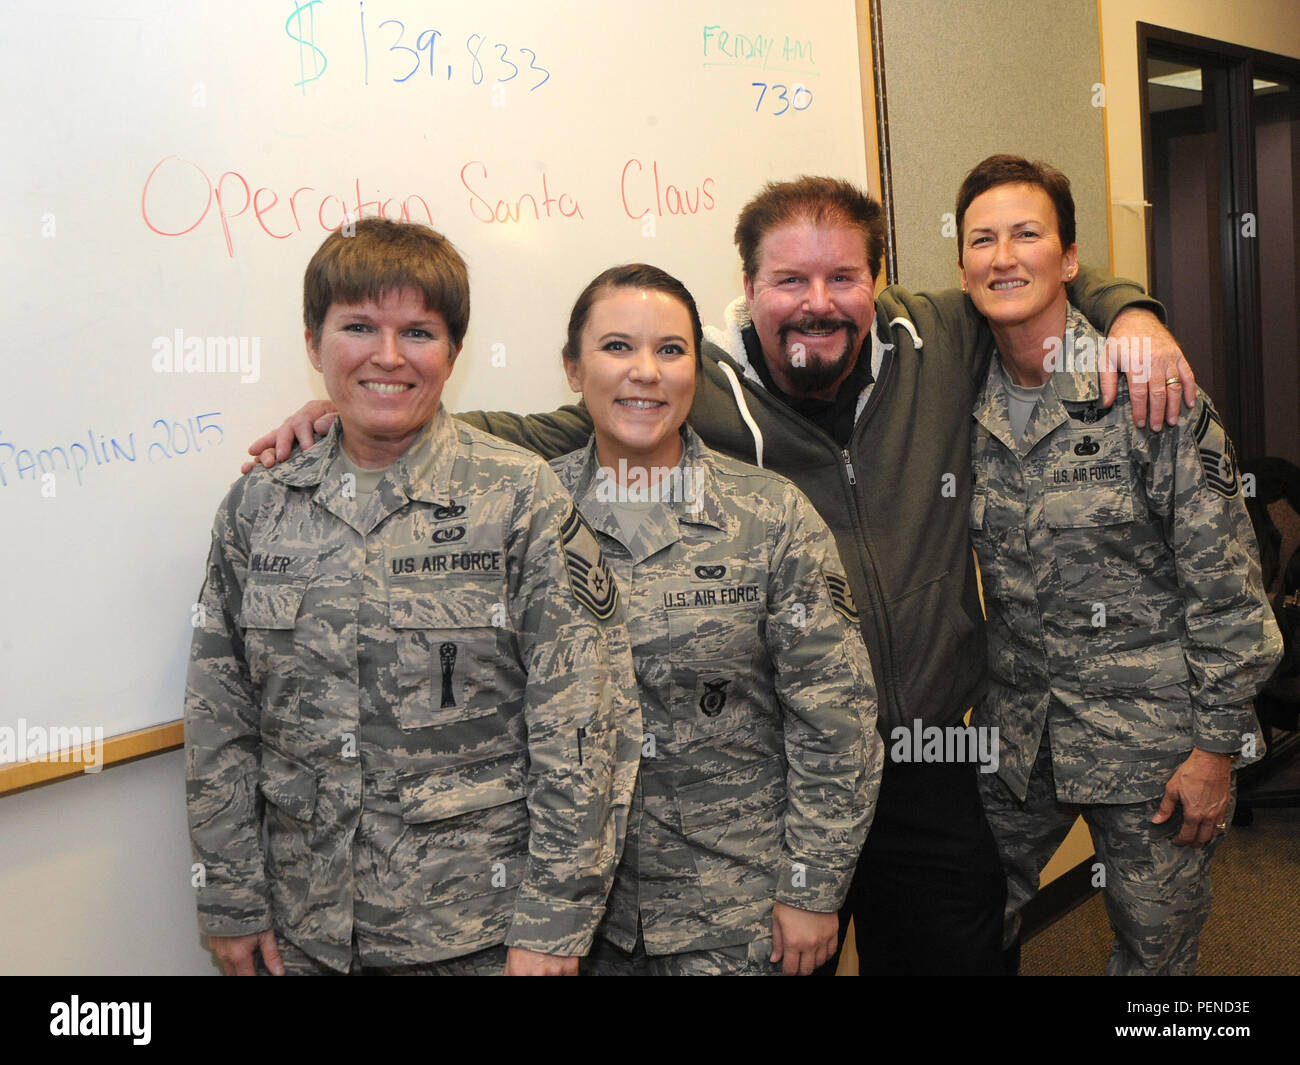 Terry Boyd, KPAM Radio 860 host, pauses for a photograph with Senior Master Sgt. Kristen Miller, left, Staff Sgt. Sara Wassam, center, and Senior Master Sgt. Pam Pittman, right, during Operation Santa Claus, an annual fundraiser, which assists local families coping with income loss due to military deployment, Dec. 4, 2015, in Clackamas, Ore. (U.S. Air Force photo by Tech. Sgt. John Hughel, 142nd Fighter Wing Public Affairs) - Stock Image